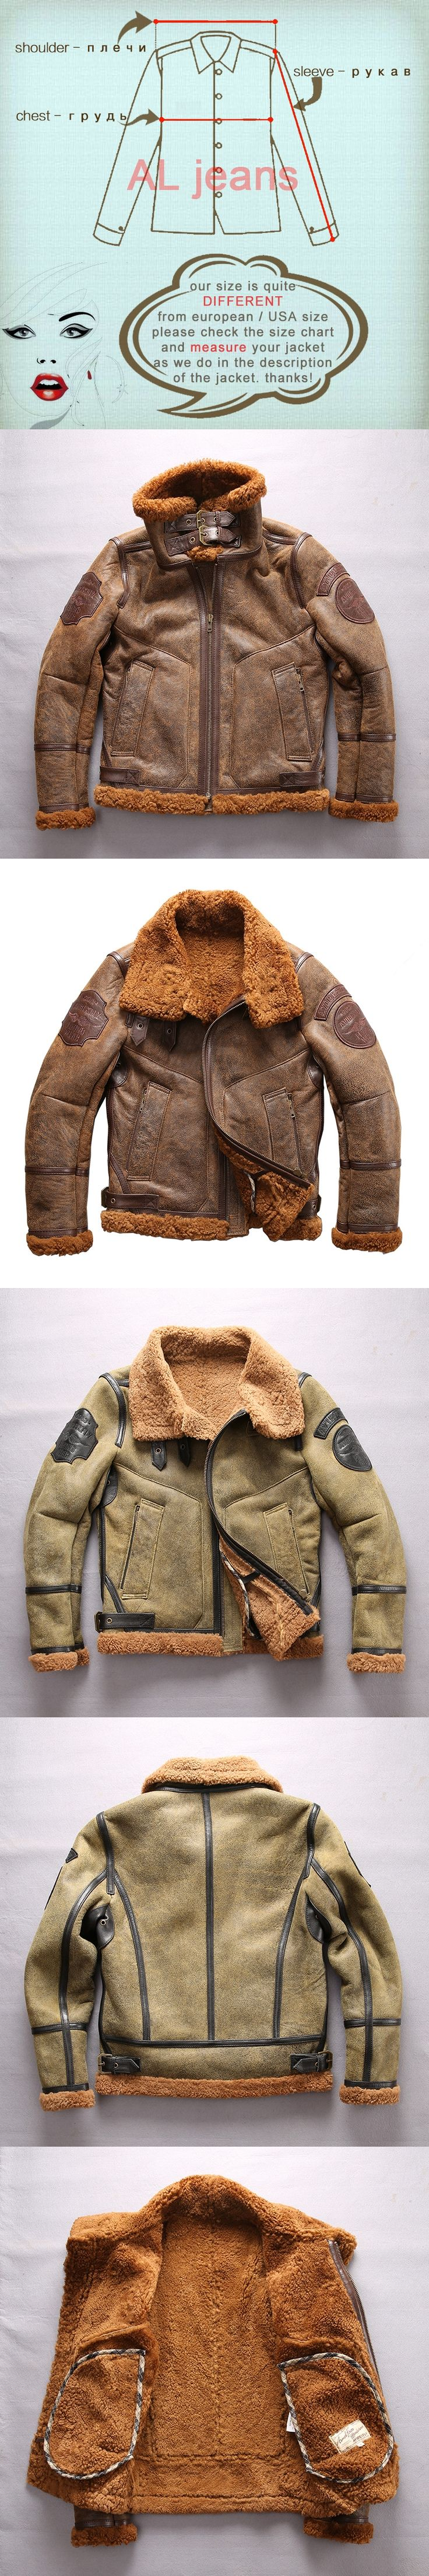 european size high quality super warm genuine sheep leather jacket mens big size B3 shearling bomber military fur jacket 8001